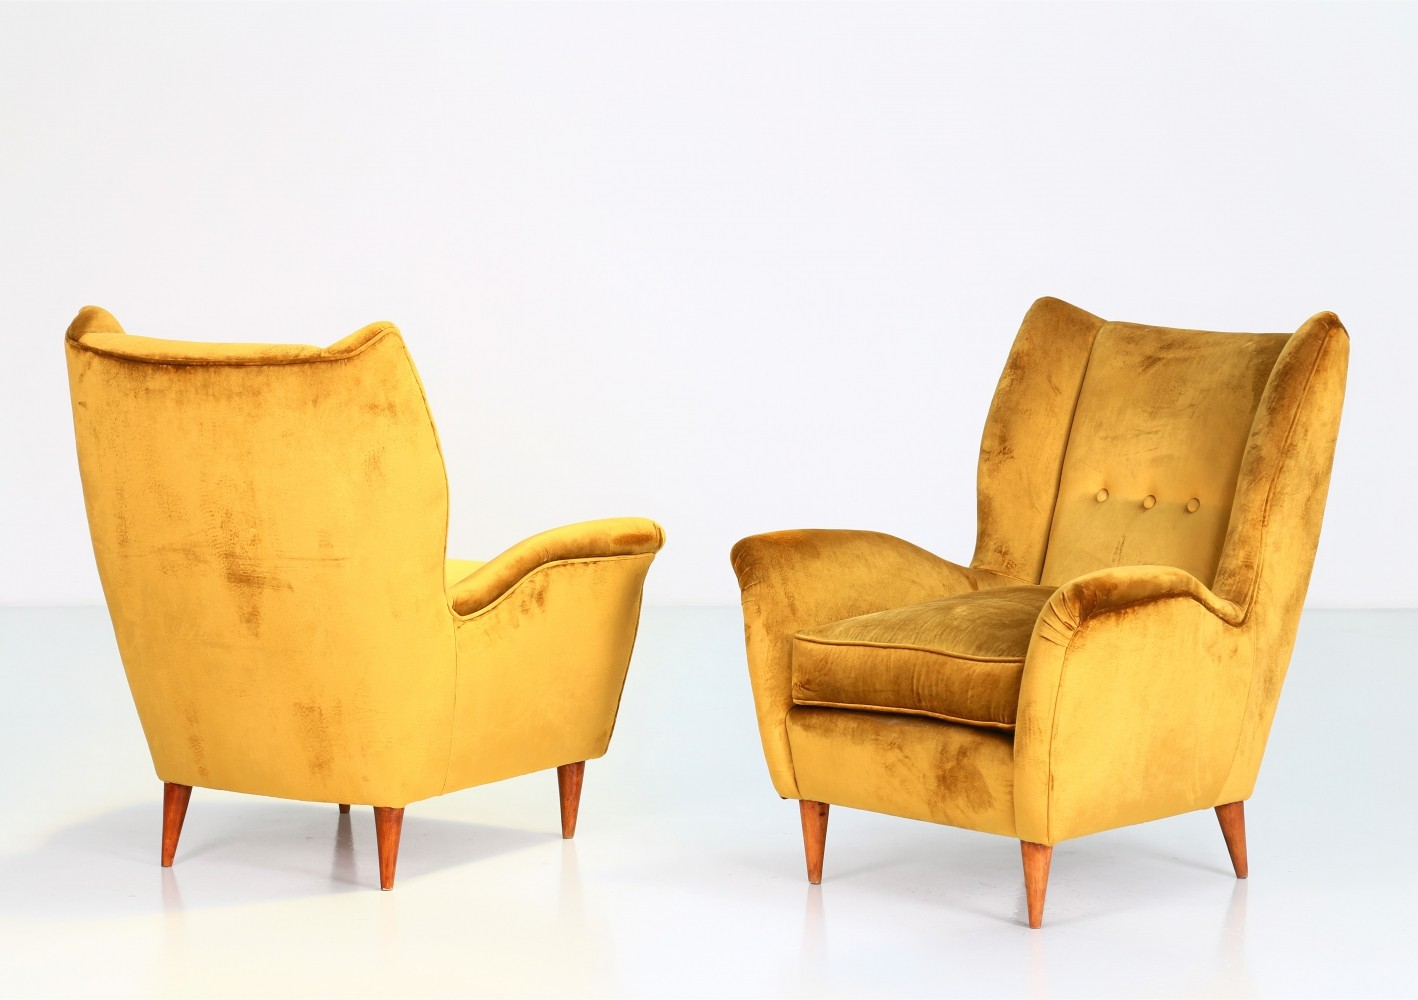 Pair of armchairs by Gio Ponti for Isa Bergamo, 1940s